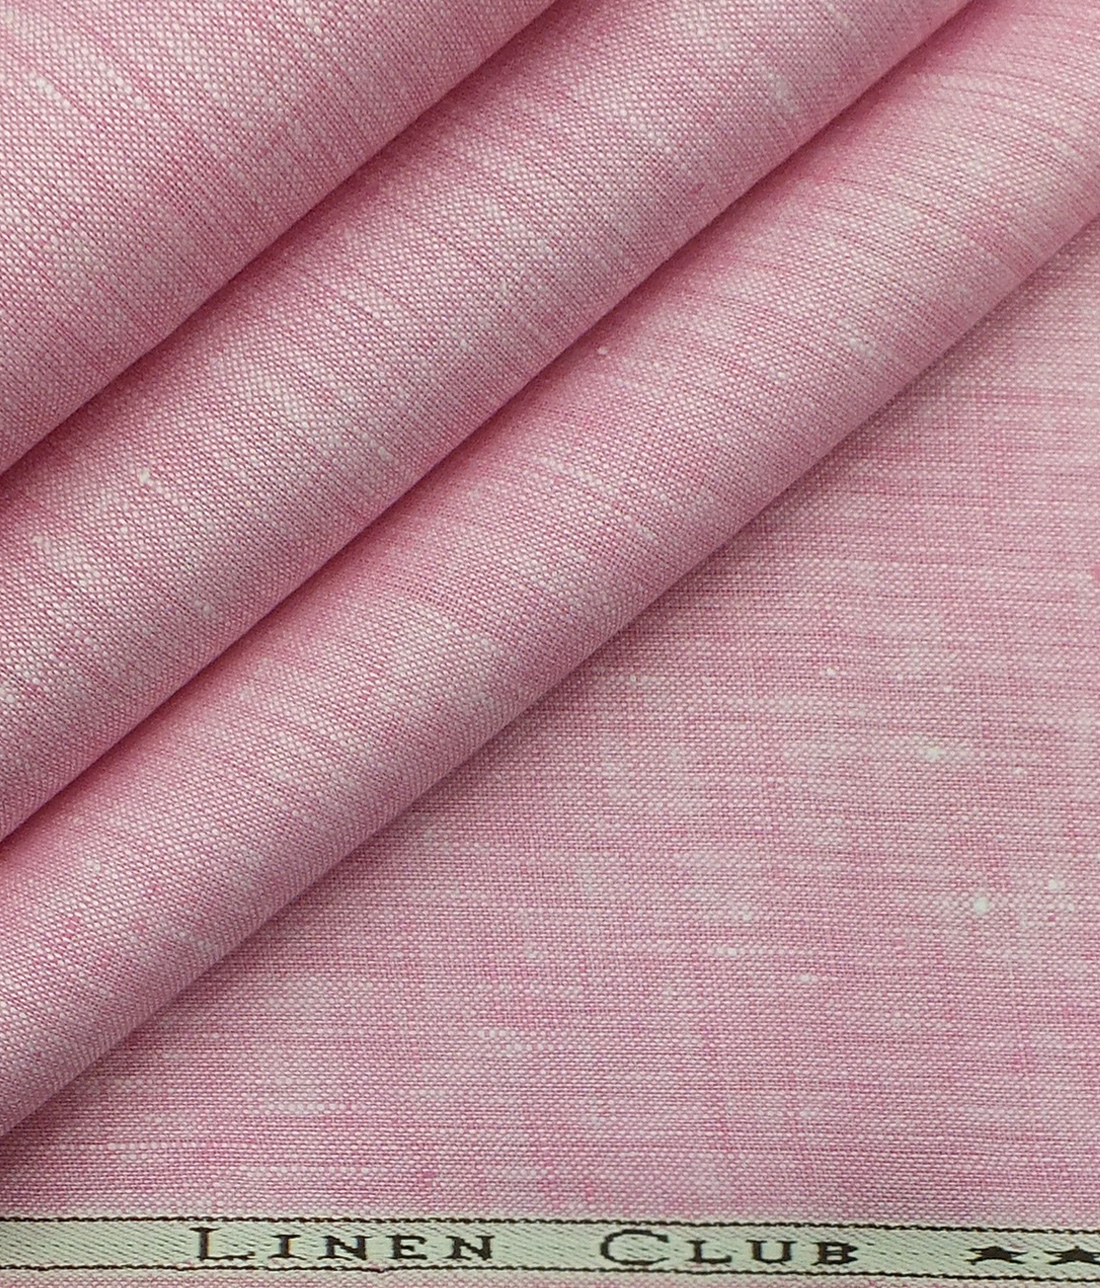 Linen Fabric Online Linen Club Casino Pink 100 Pure Linen Kurta Fabric